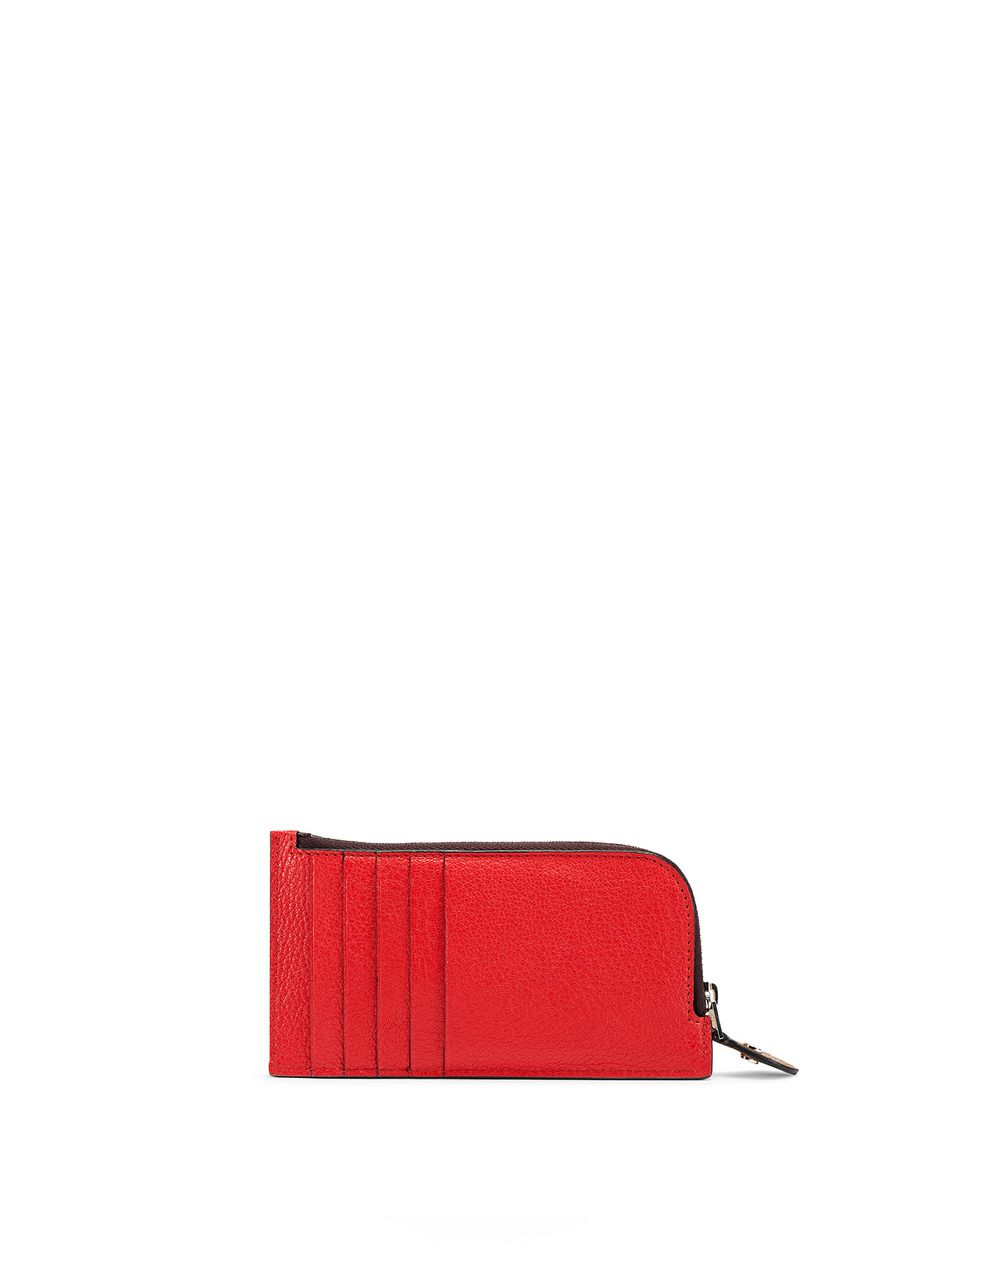 MOTHER AND CHILD PRINT ZIPPED WALLET - Lanvin